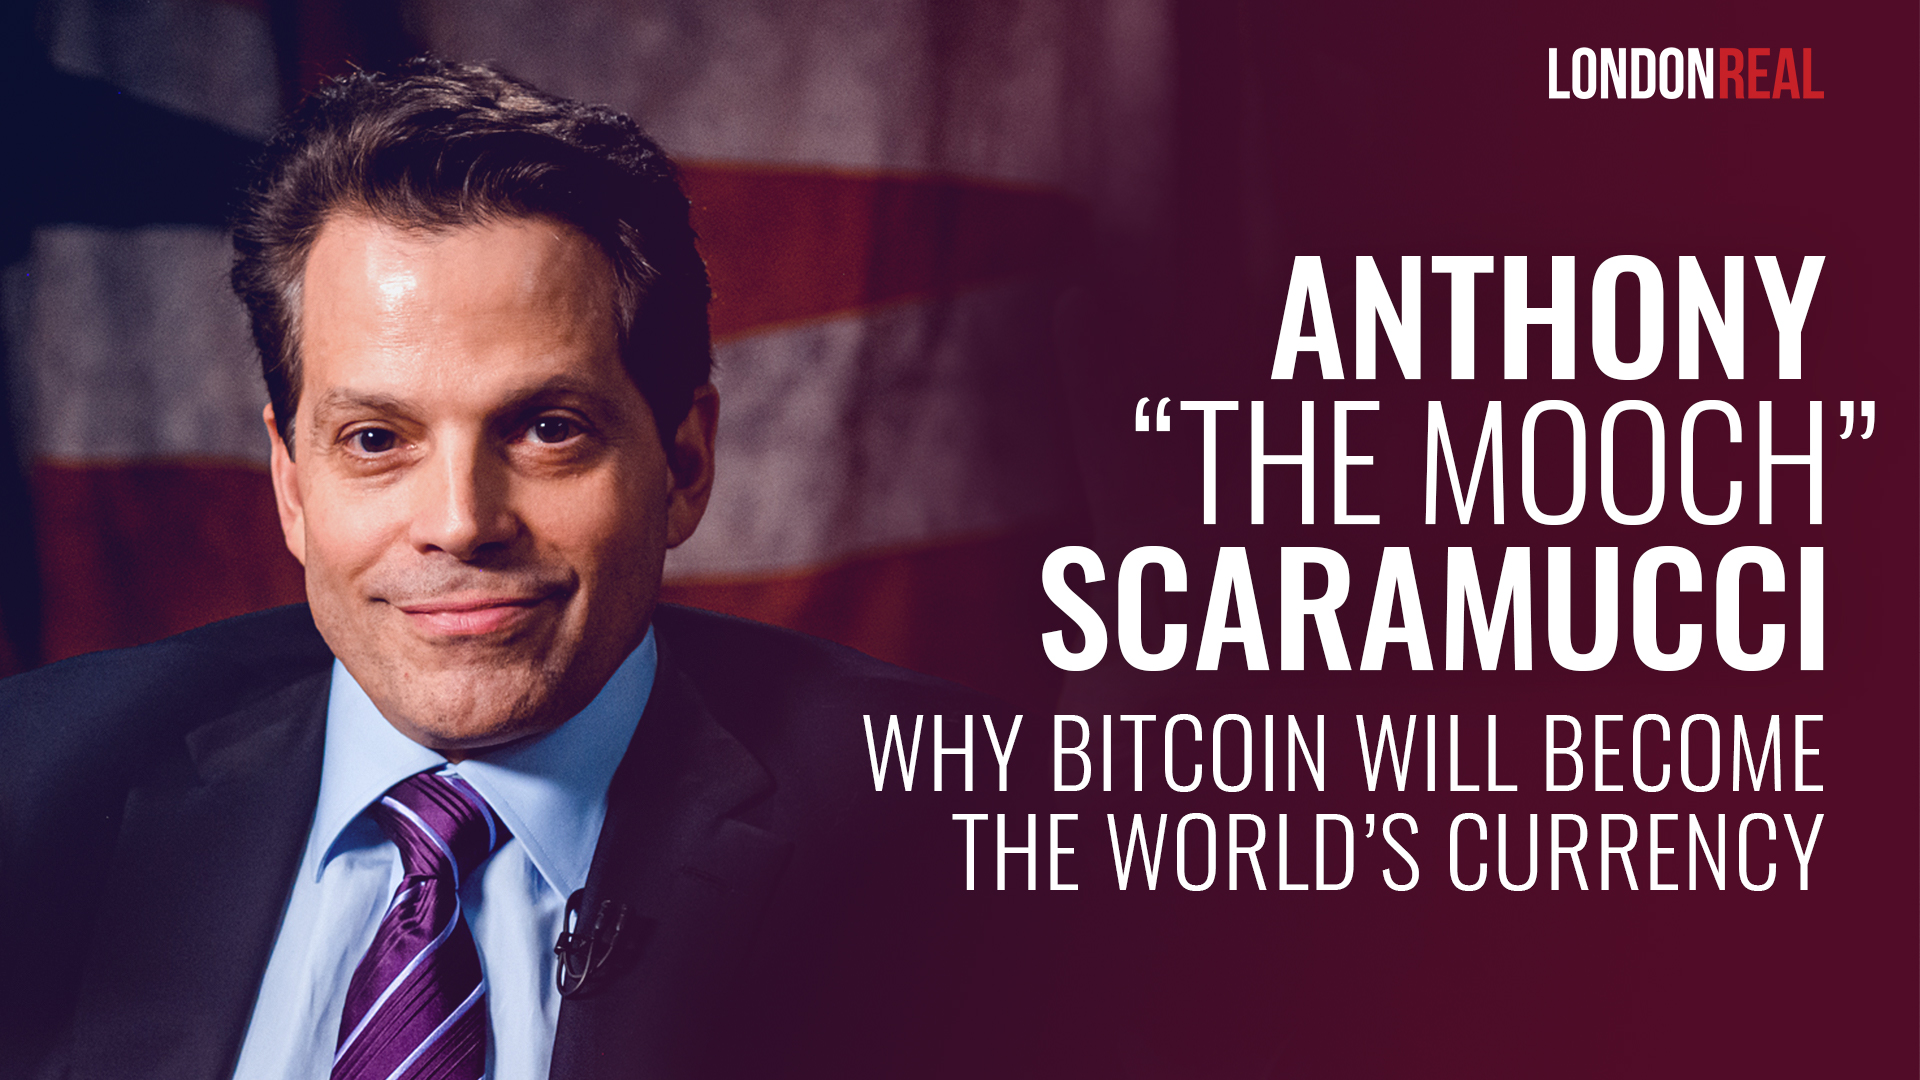 Anthony Scaramucci - Why Bitcoin Will Become The World's Currency